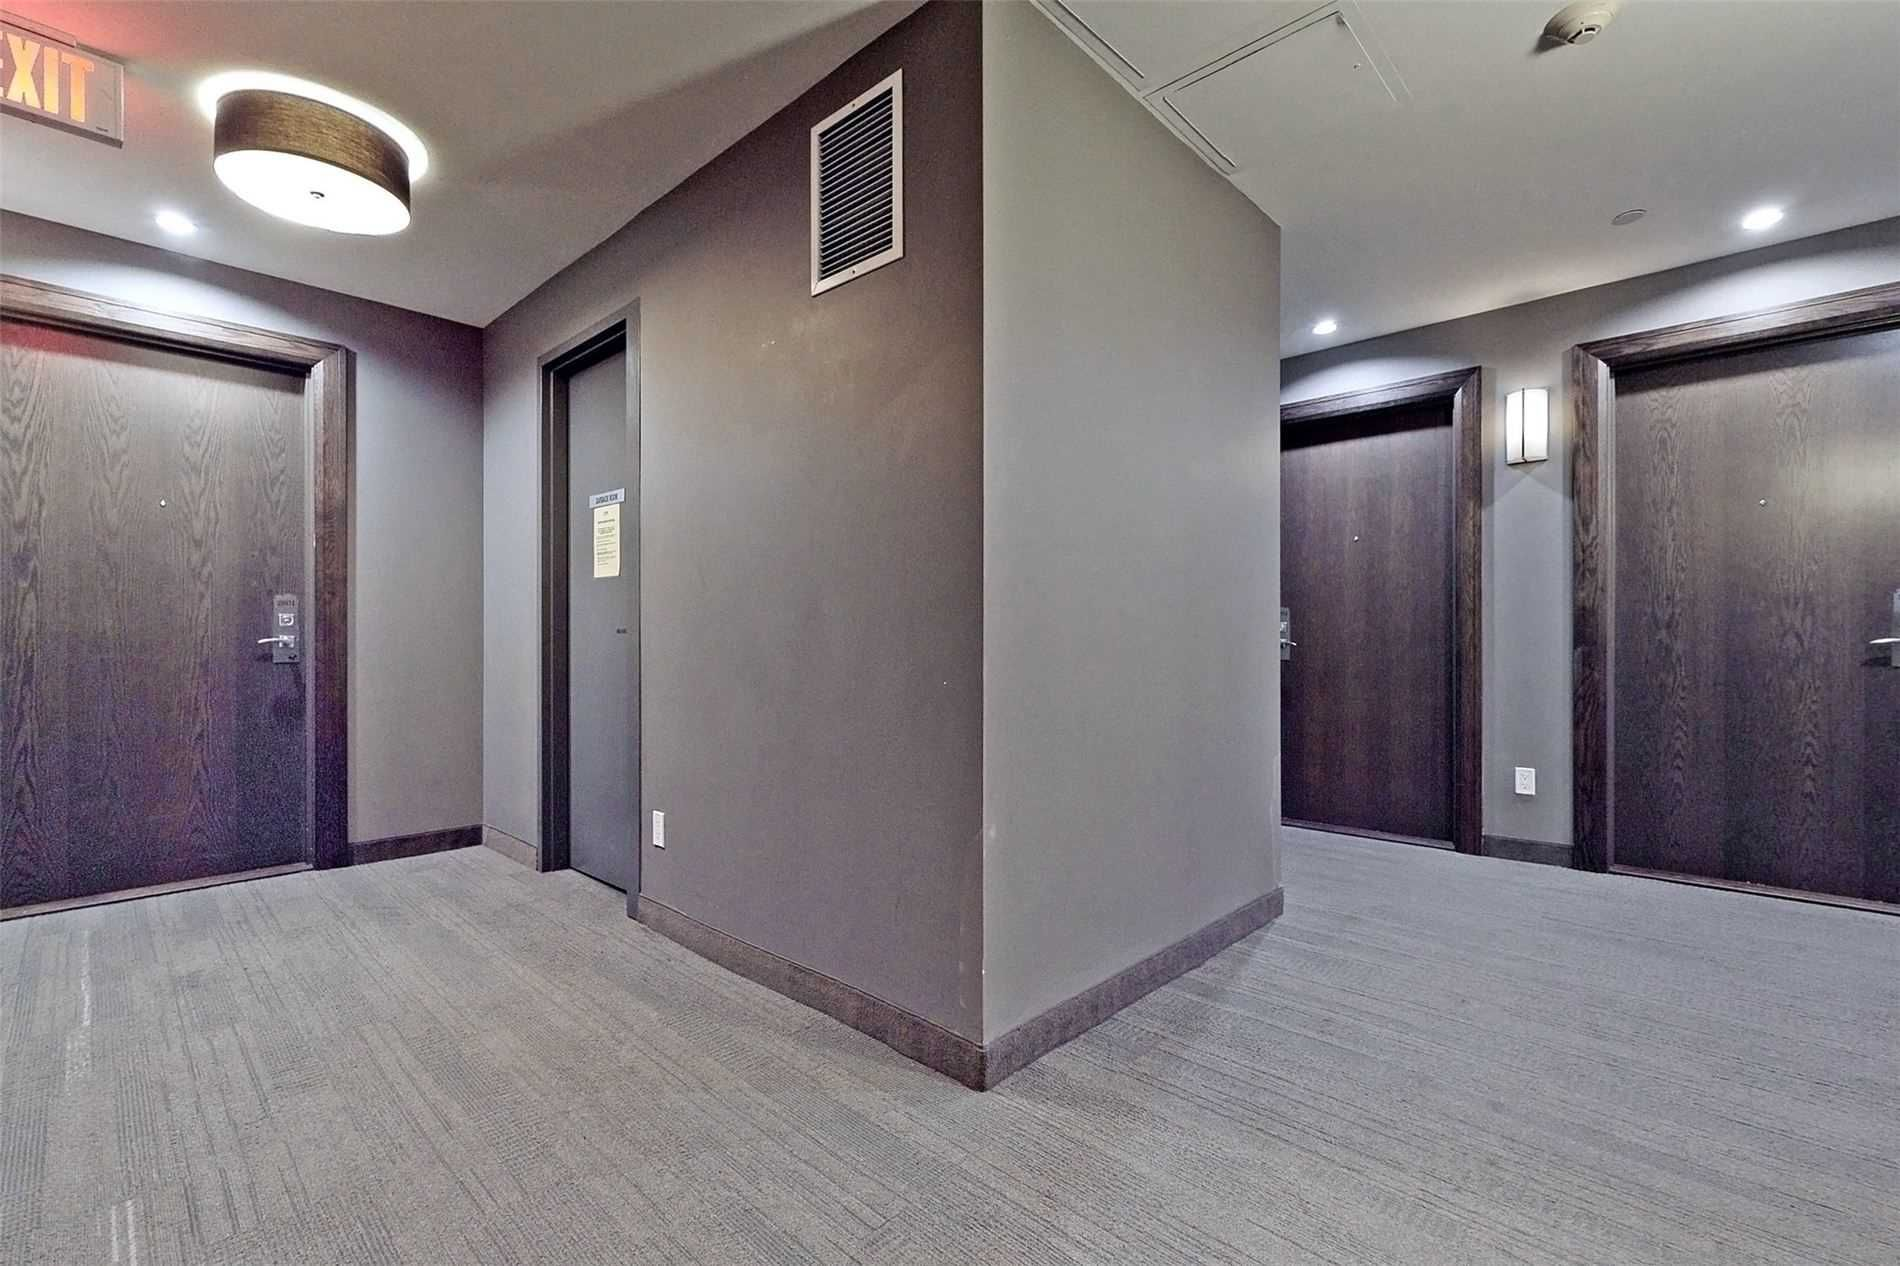 2900 Highway 7, unit #2801 for rent in Toronto - image #2